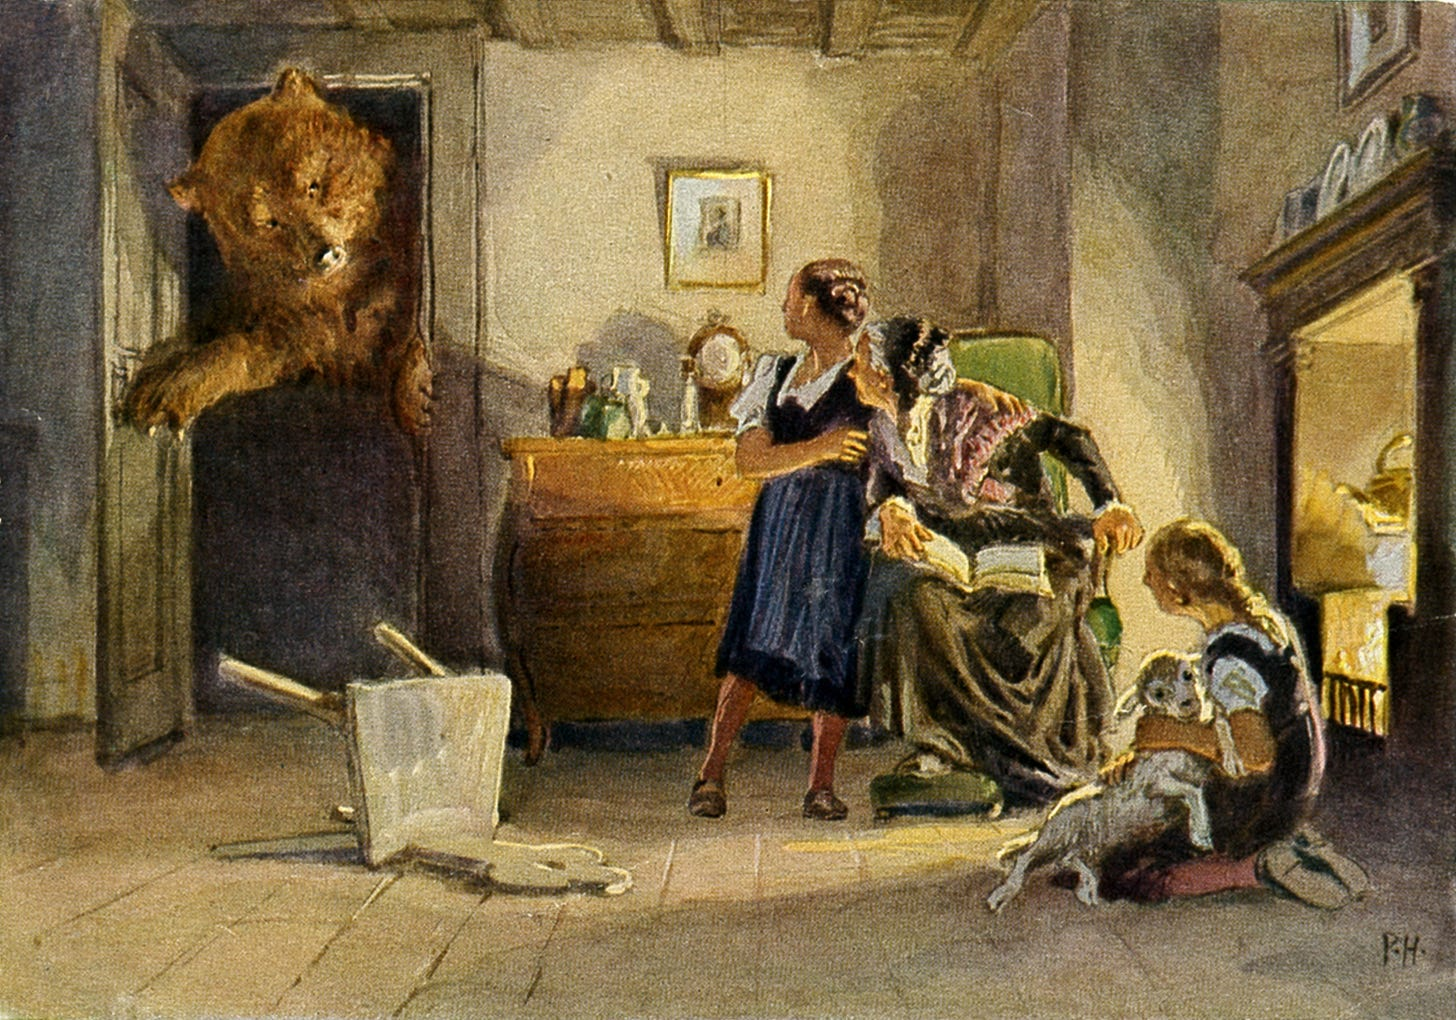 Bear entering room full of children in illustration from a Grimms' fairy tale